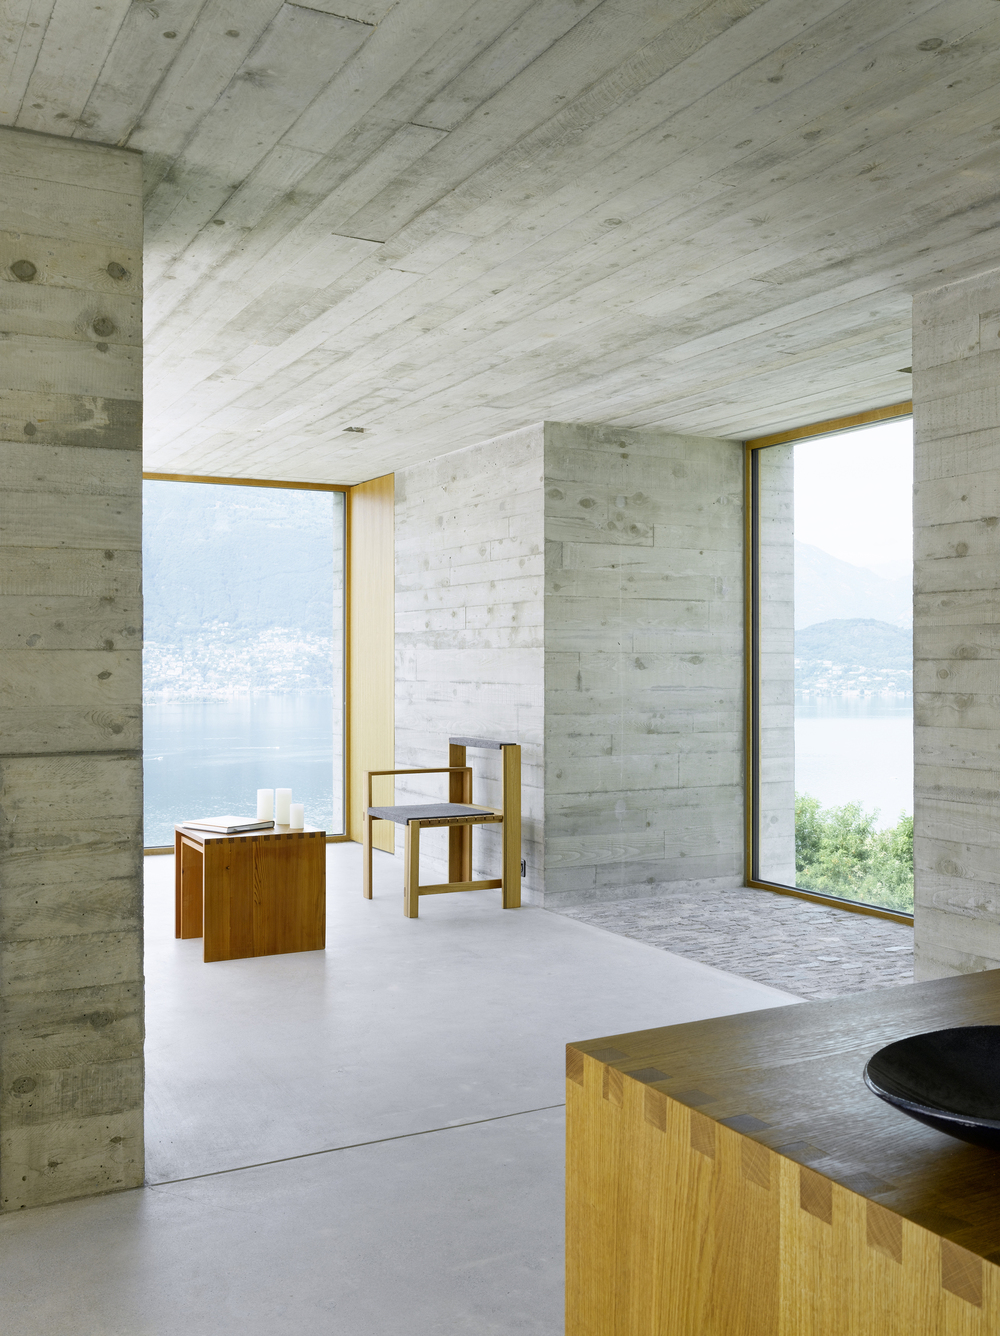 New-Concrete-House-by-Wespi-de-Meuron-2.jpg